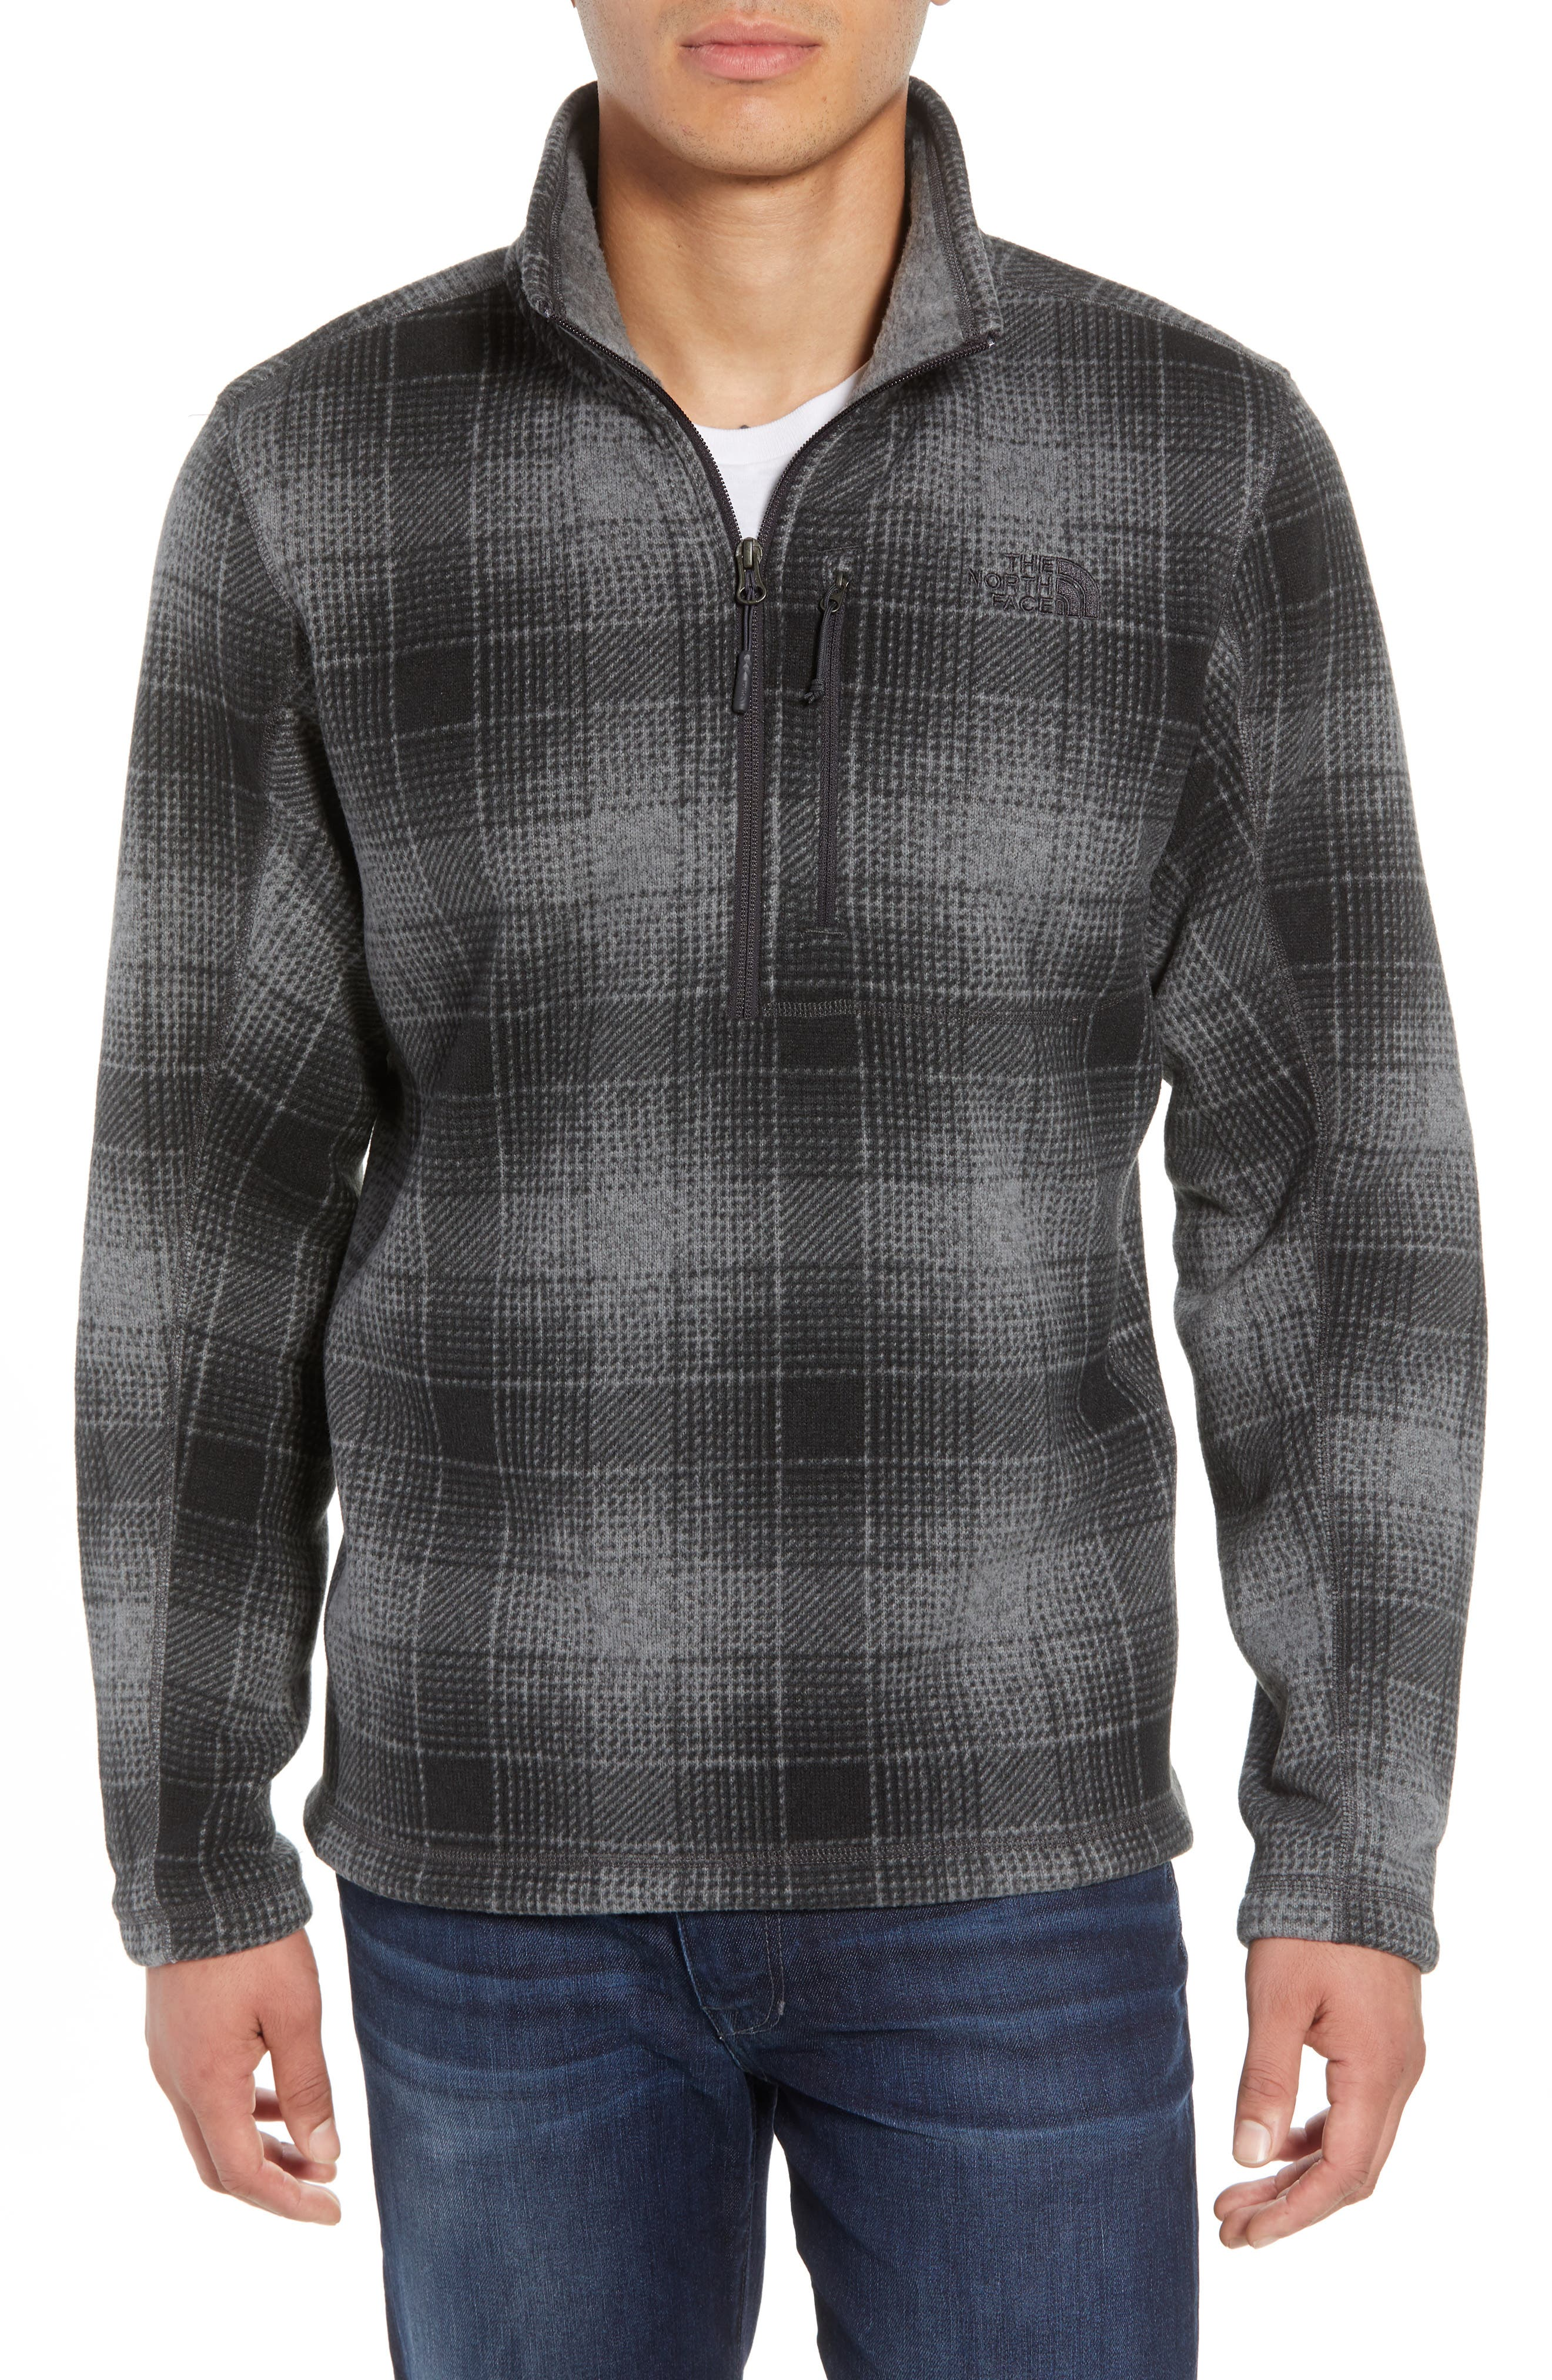 Novelty Gordon Lyons Plaid Pullover,                             Main thumbnail 1, color,                             MONUMENT GREY OMBRE PLAID